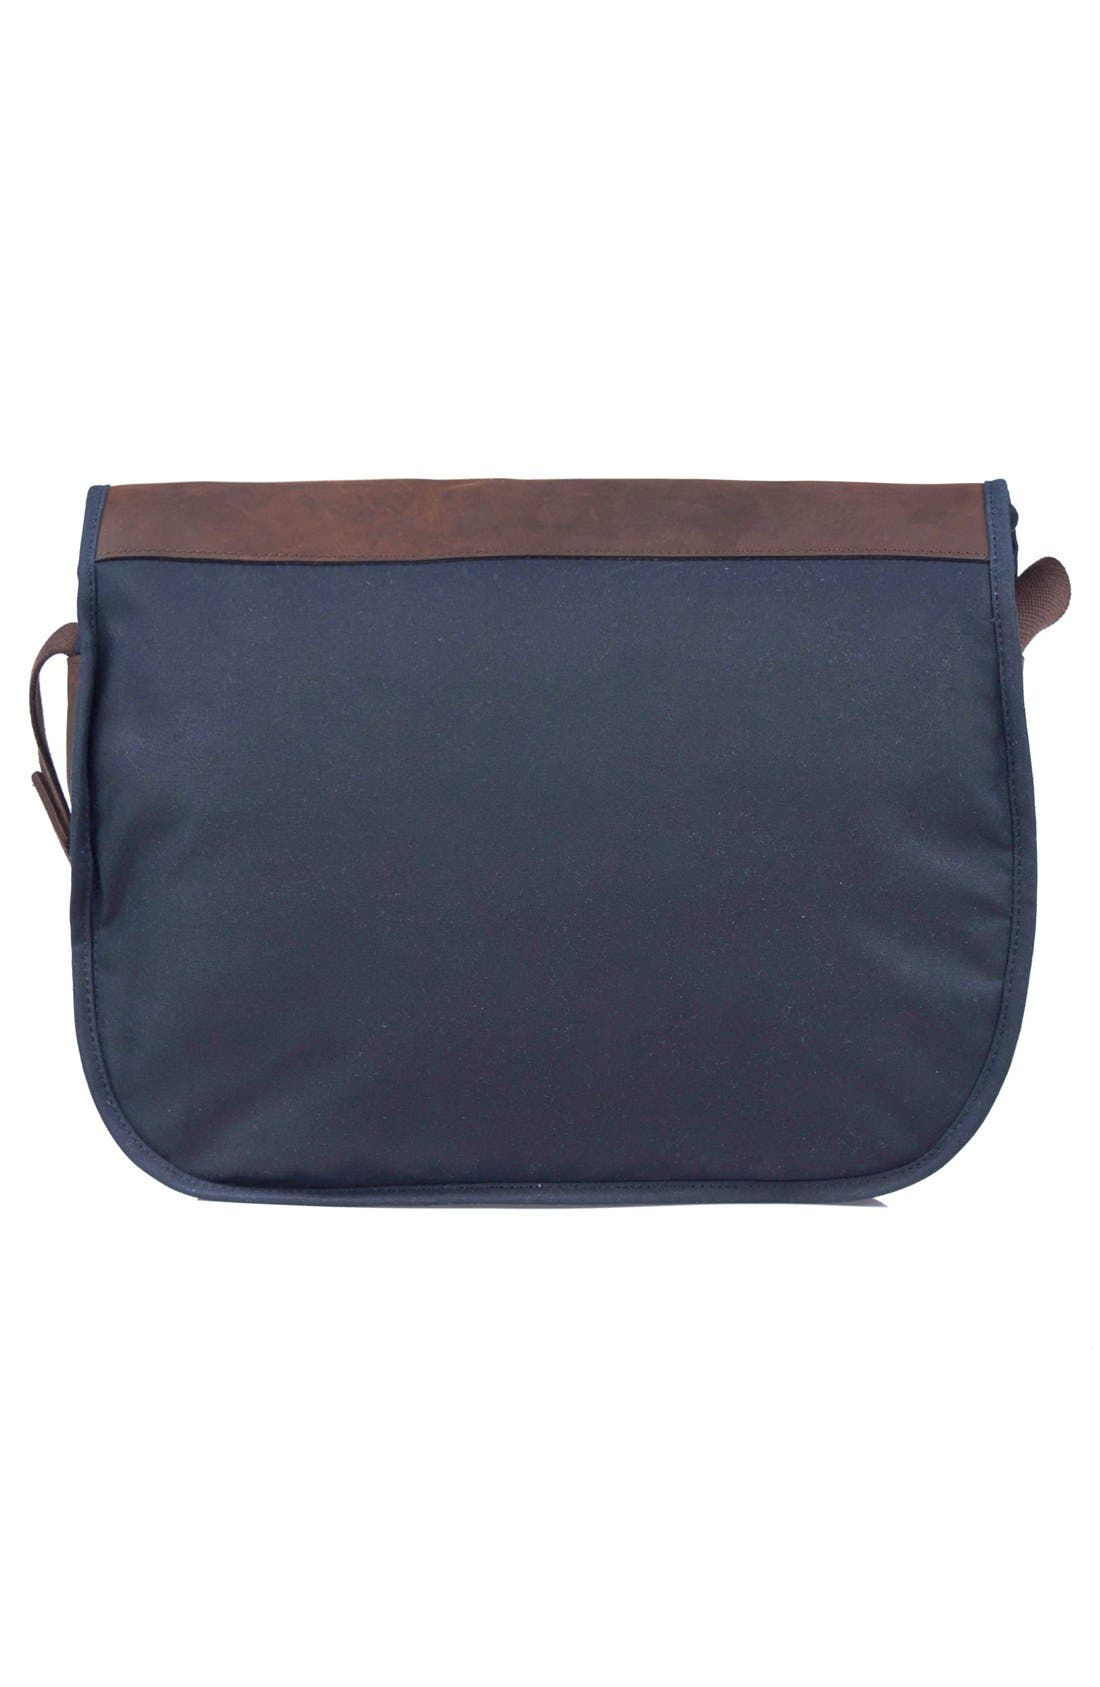 Waxed Canvas Tarras Bag,                             Alternate thumbnail 2, color,                             Navy